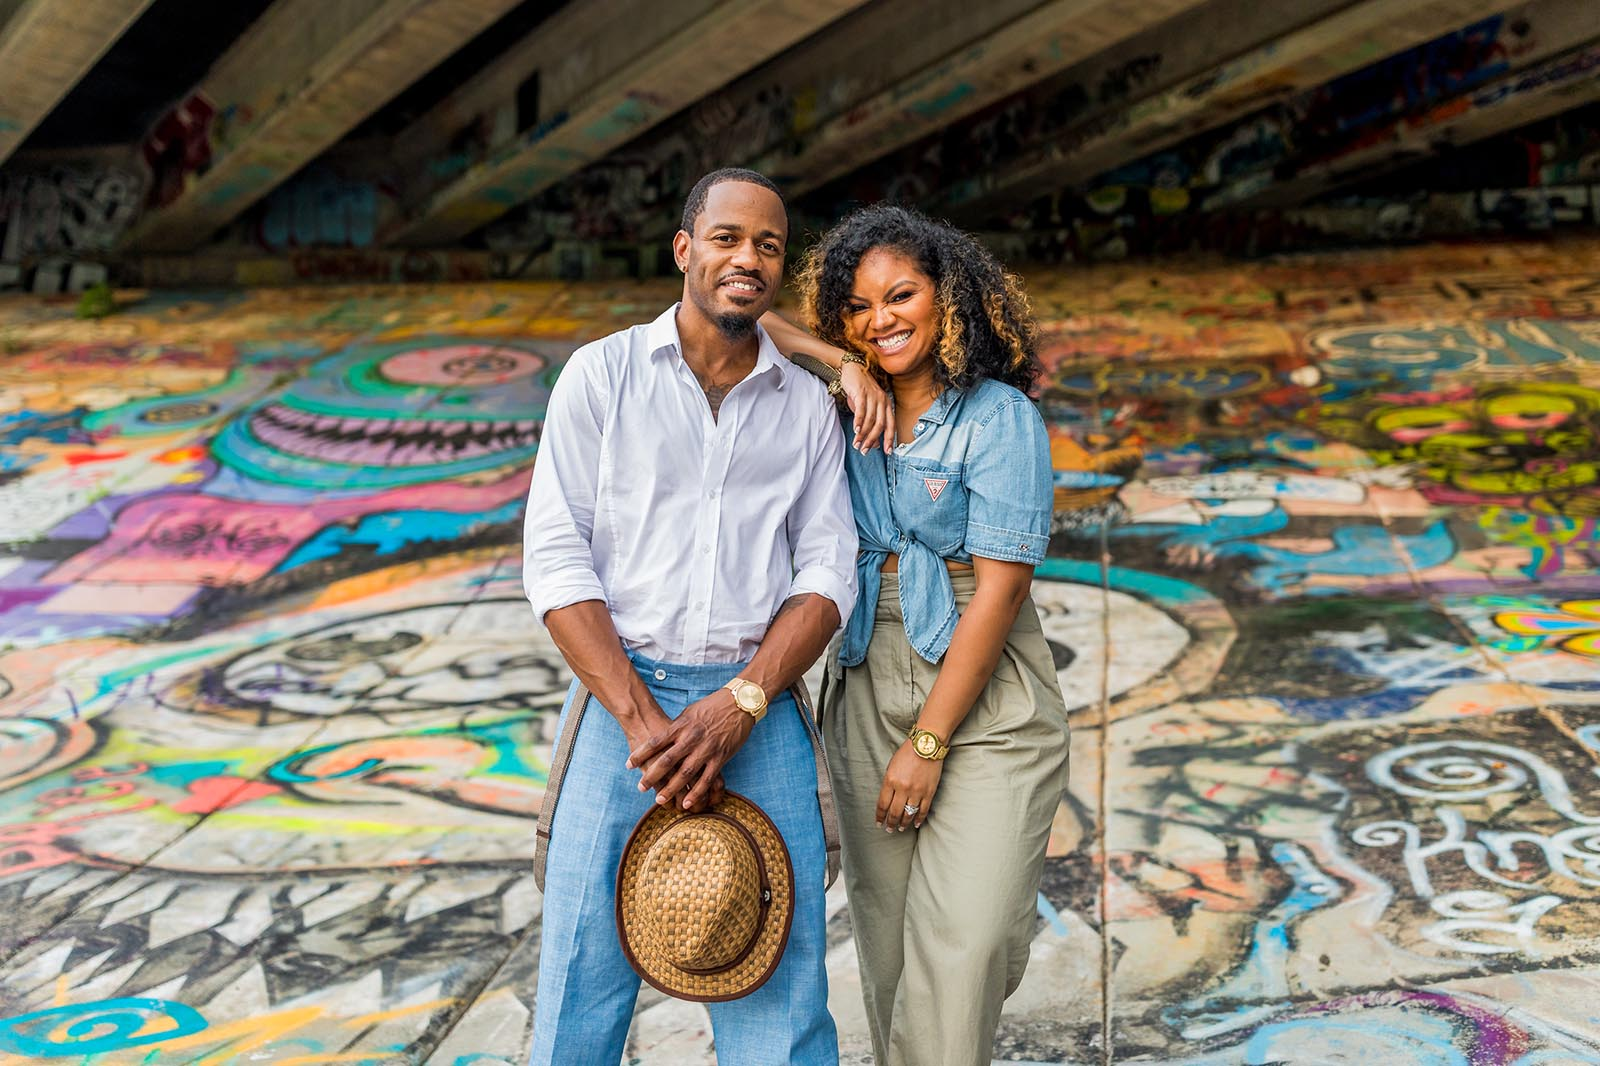 Couples photo on painted mural by Mecca Gamble